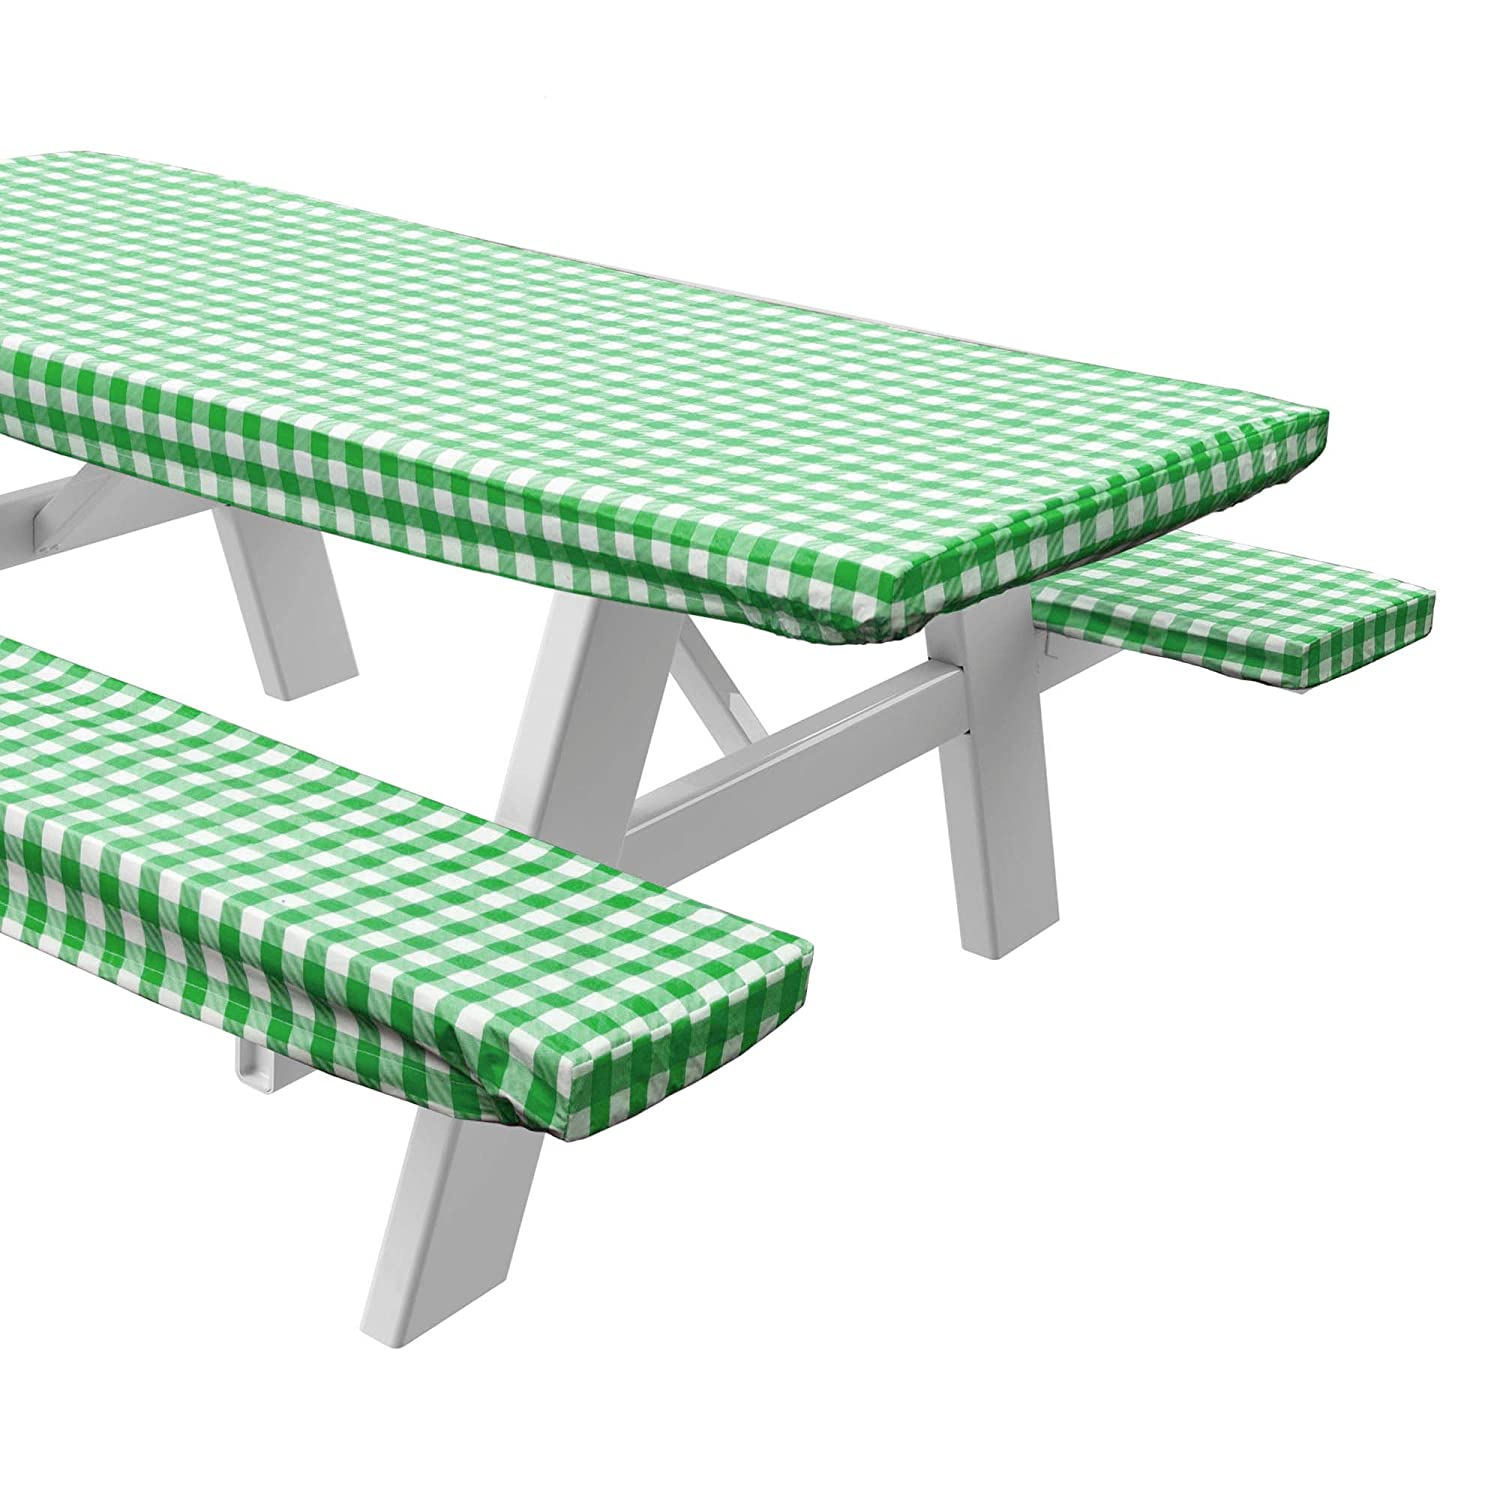 Sorefy Vinyl Picnic Table and Bench Fitted Tablecloth Cover, Checkered Design, Flannel Backed Lining, 28 x 72 Inch, 3-Piece Set, Green